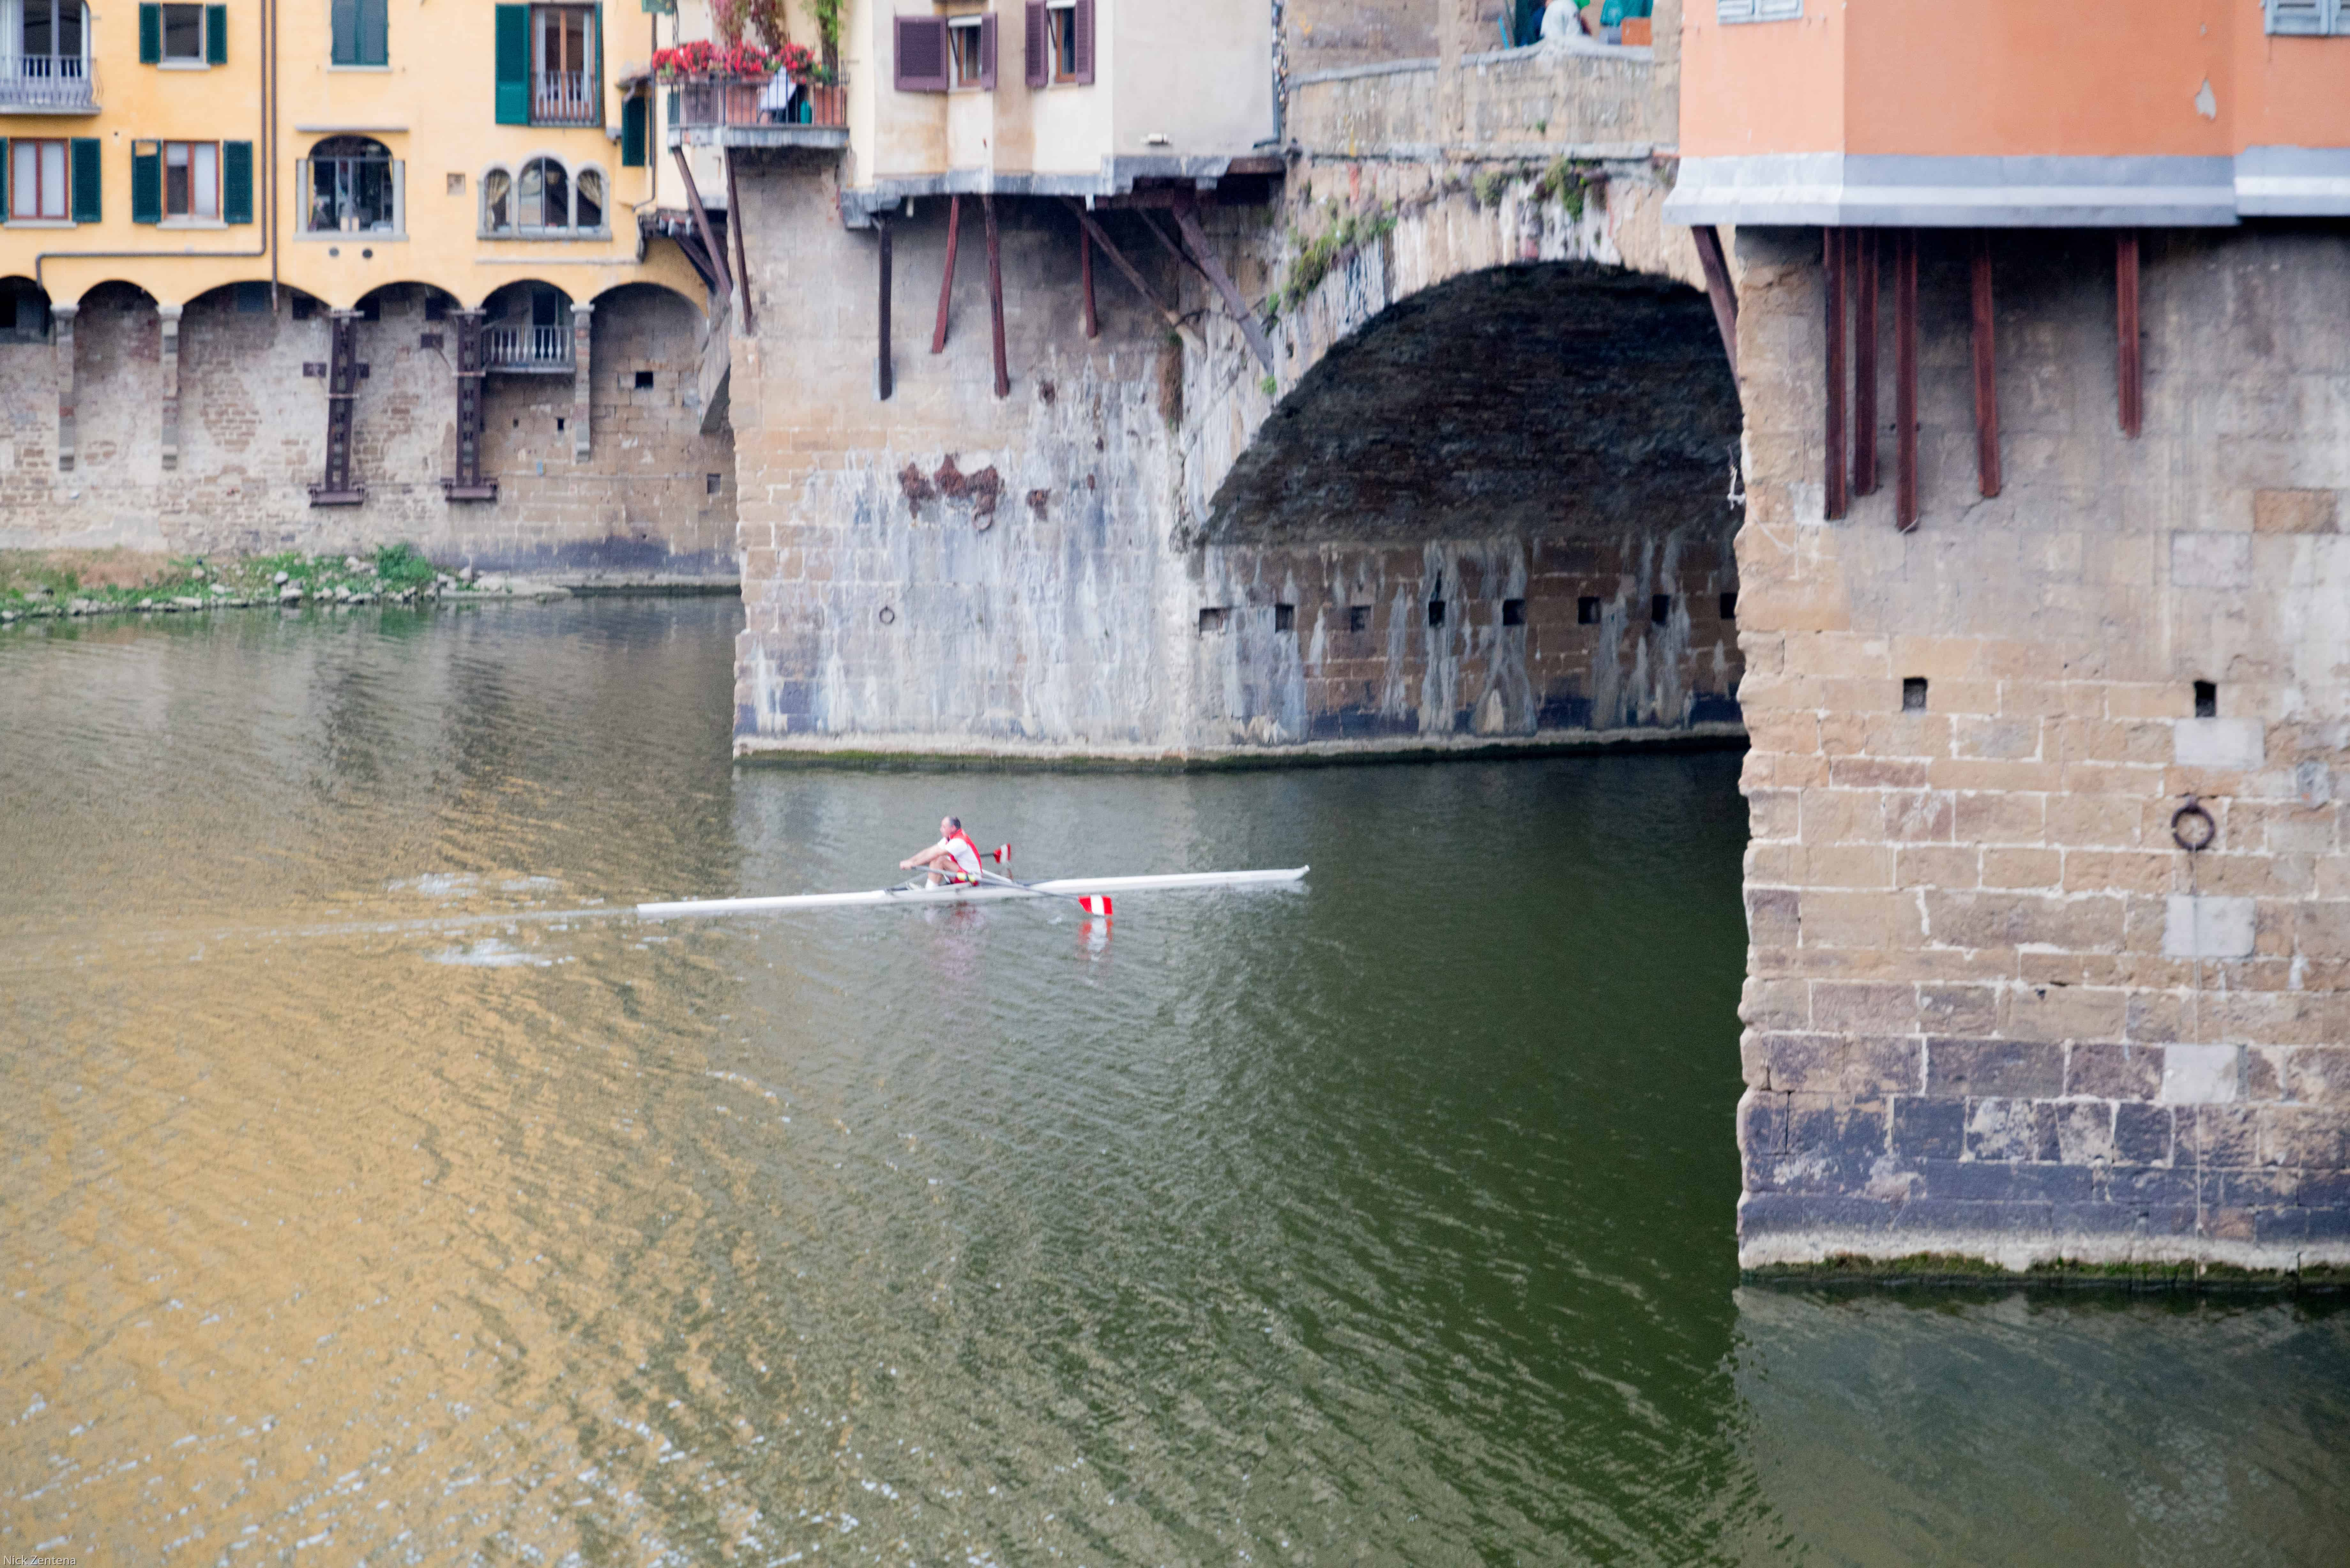 Rower on the Arno River Florence Italy